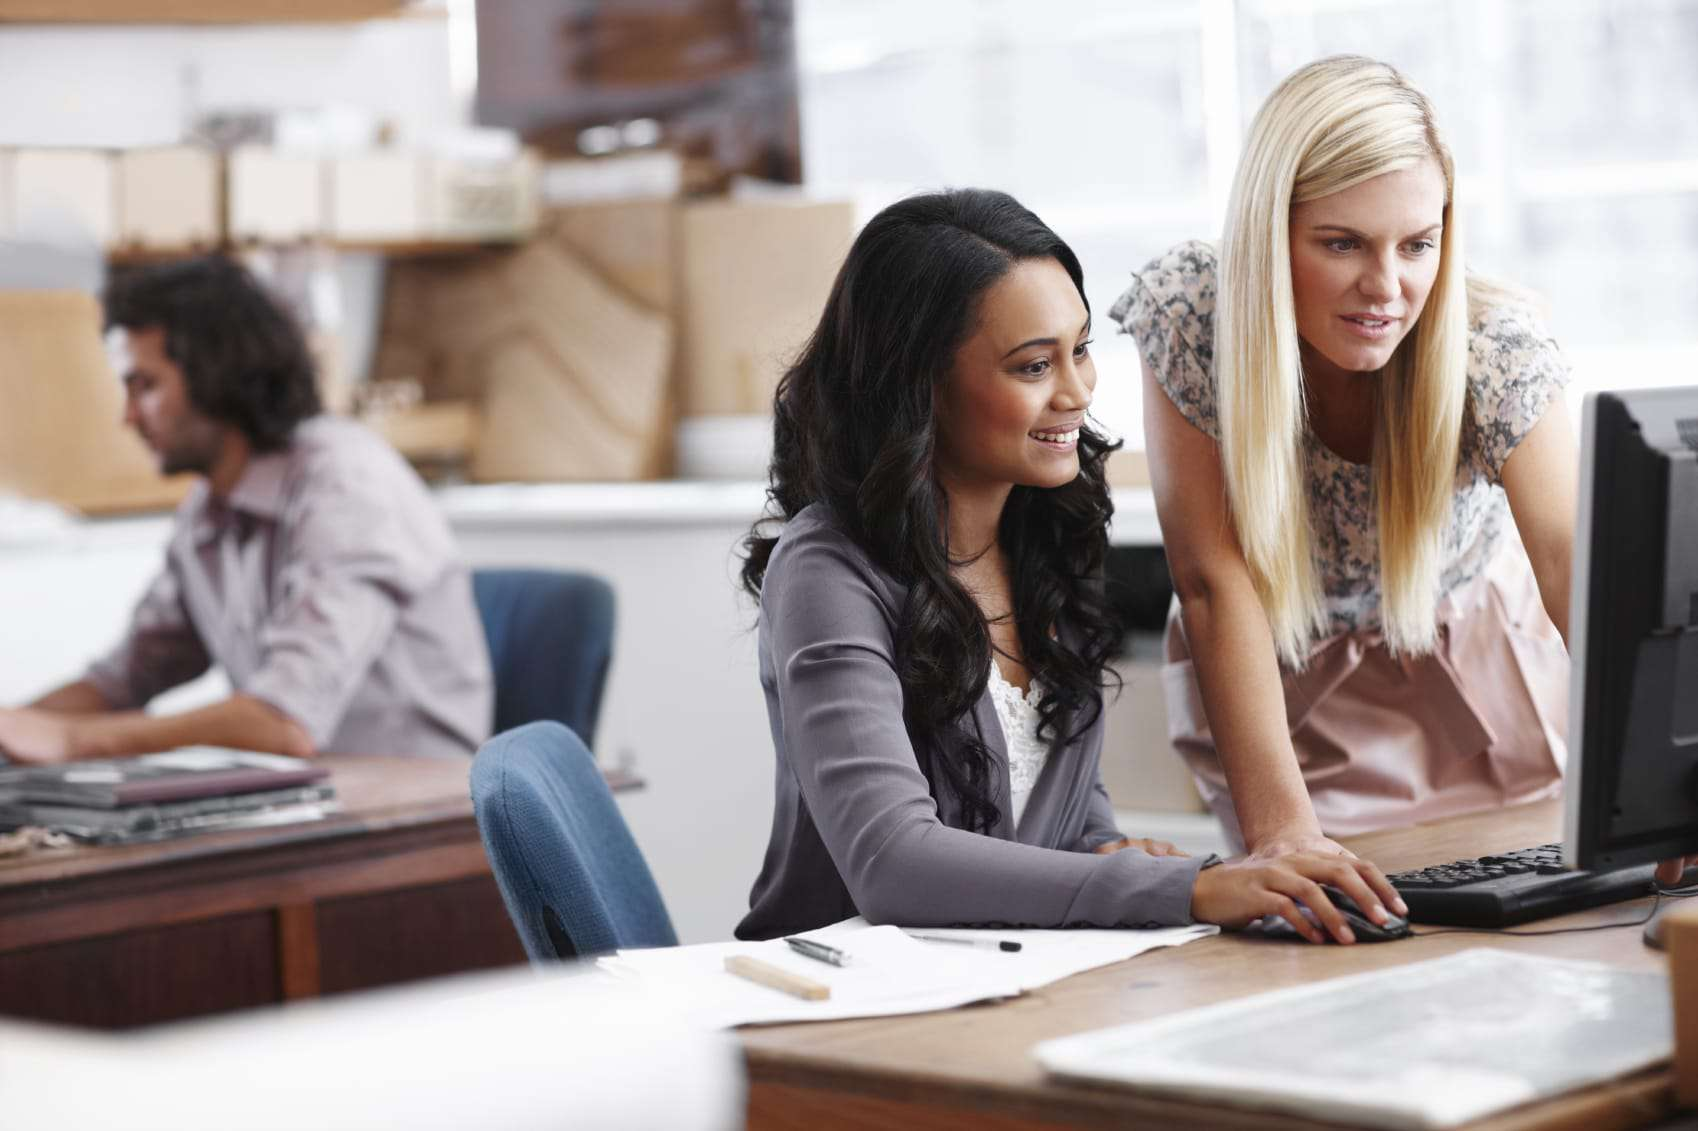 The following are good reasons for why women should invest in a coworking space